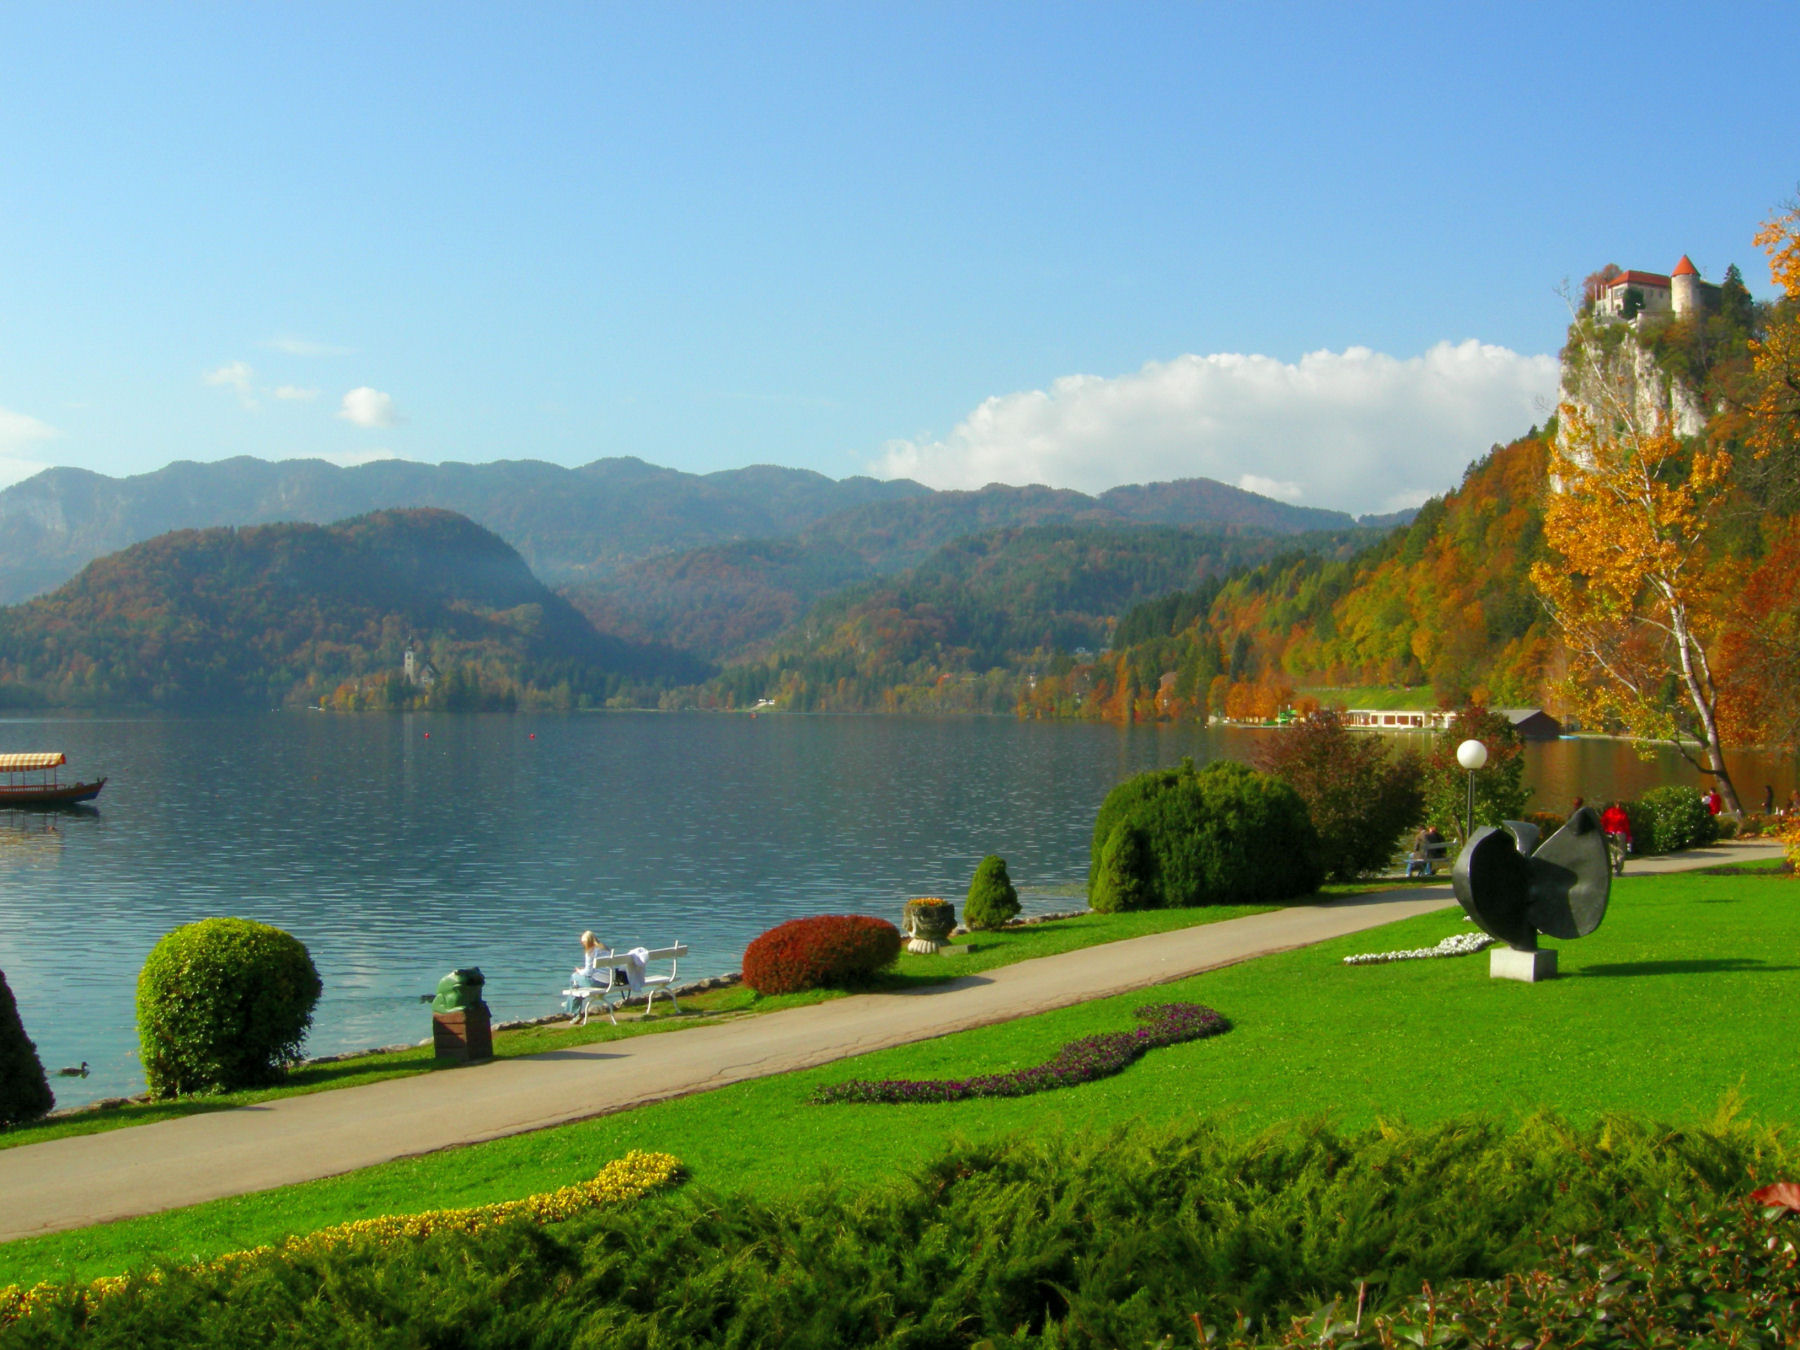 Bled is the perfect place for those who enjoy peace and quiet and stunning views of nature